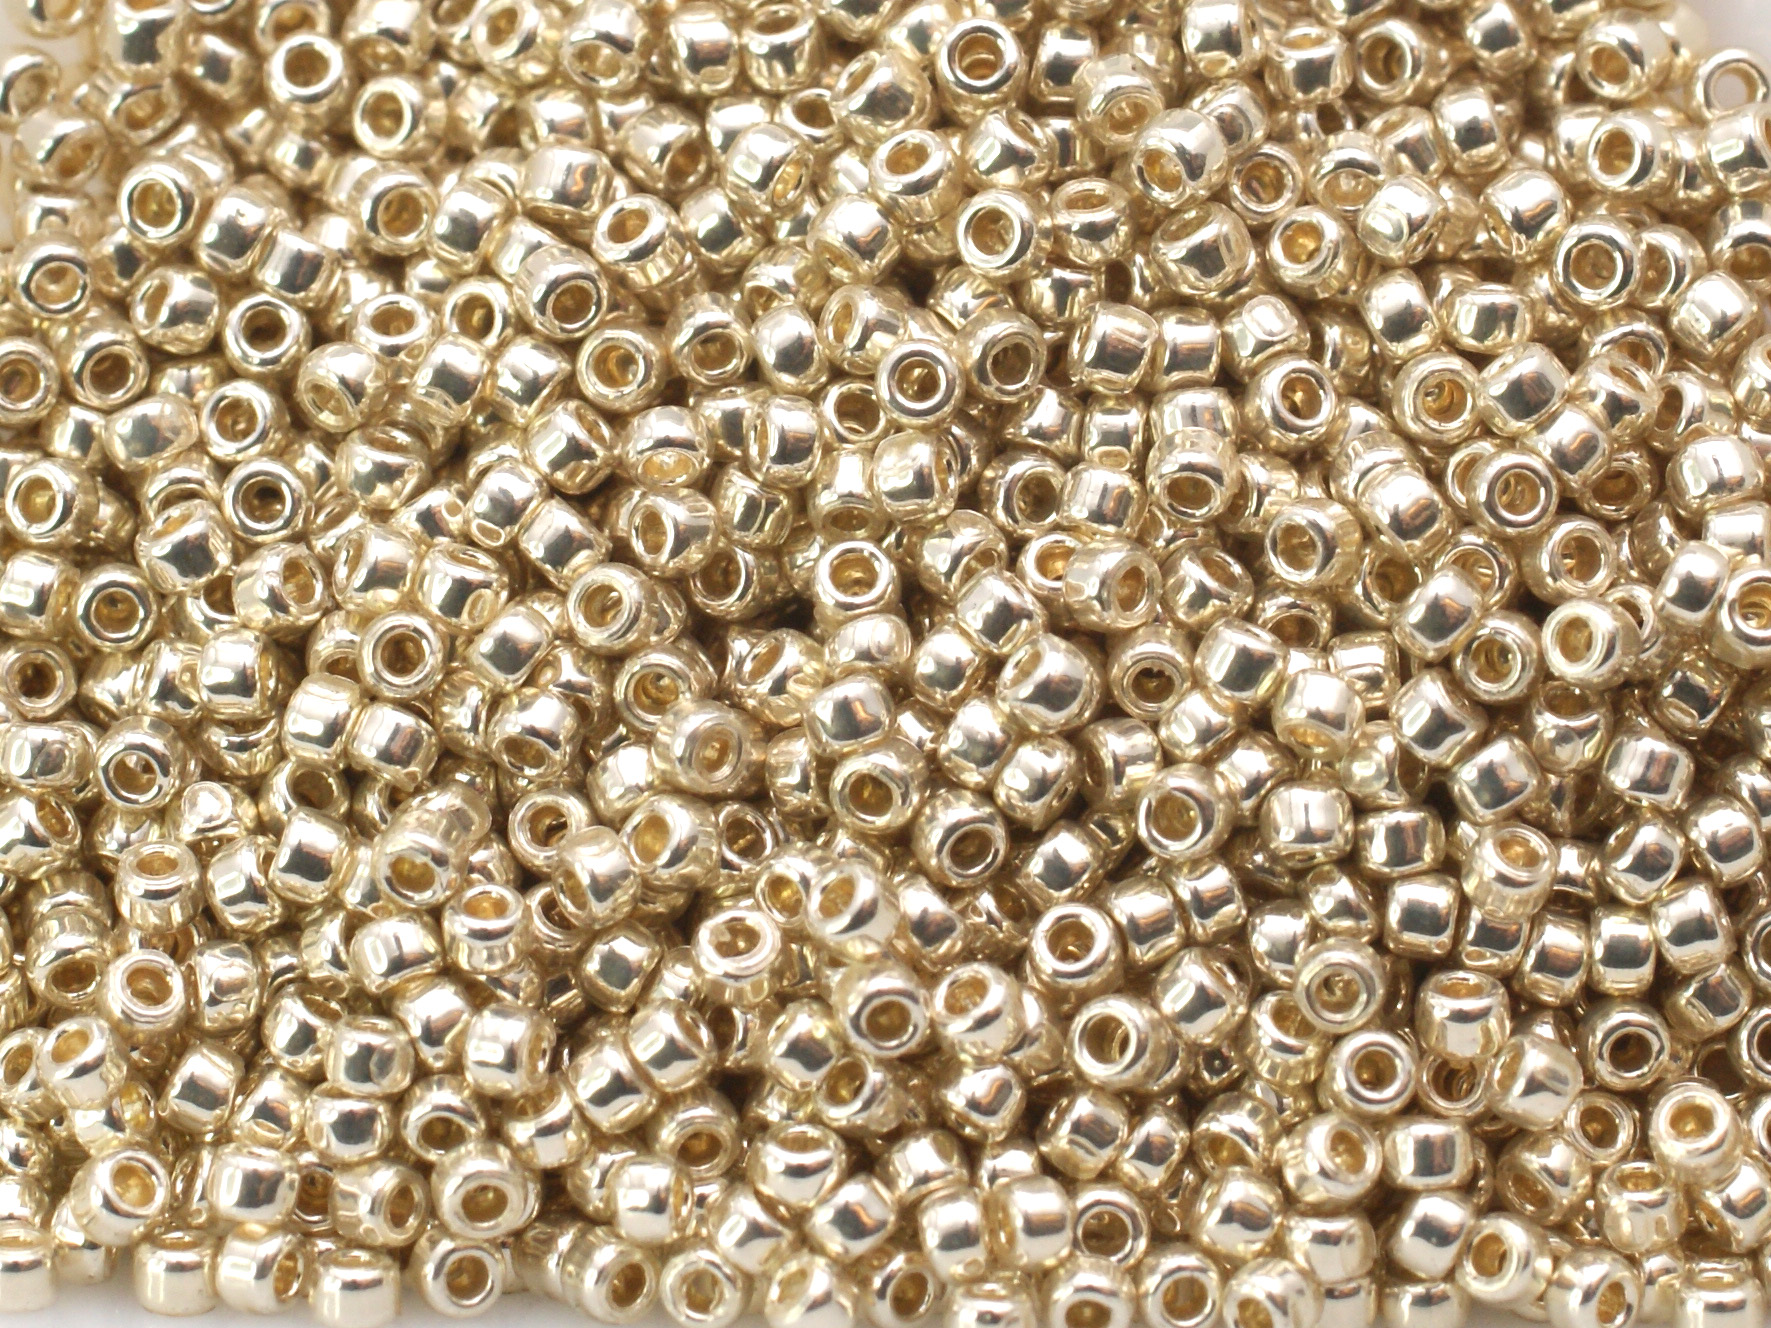 10 g 15/0 TOHO Seedbeads, Permanent Finish - Galvanized Aluminiu